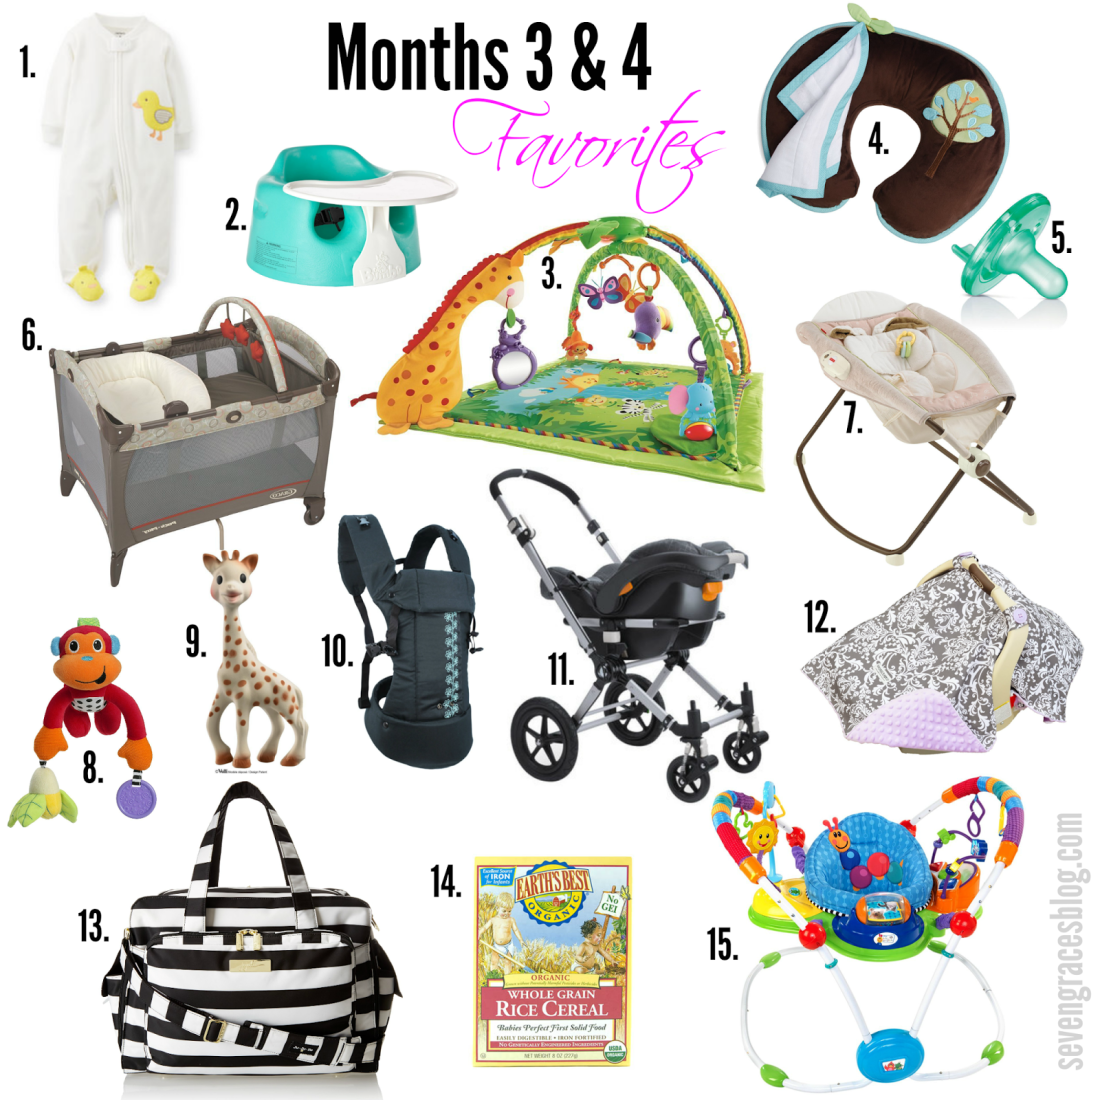 Top 15 Baby Items for Months 3 & 4 - Seven Graces